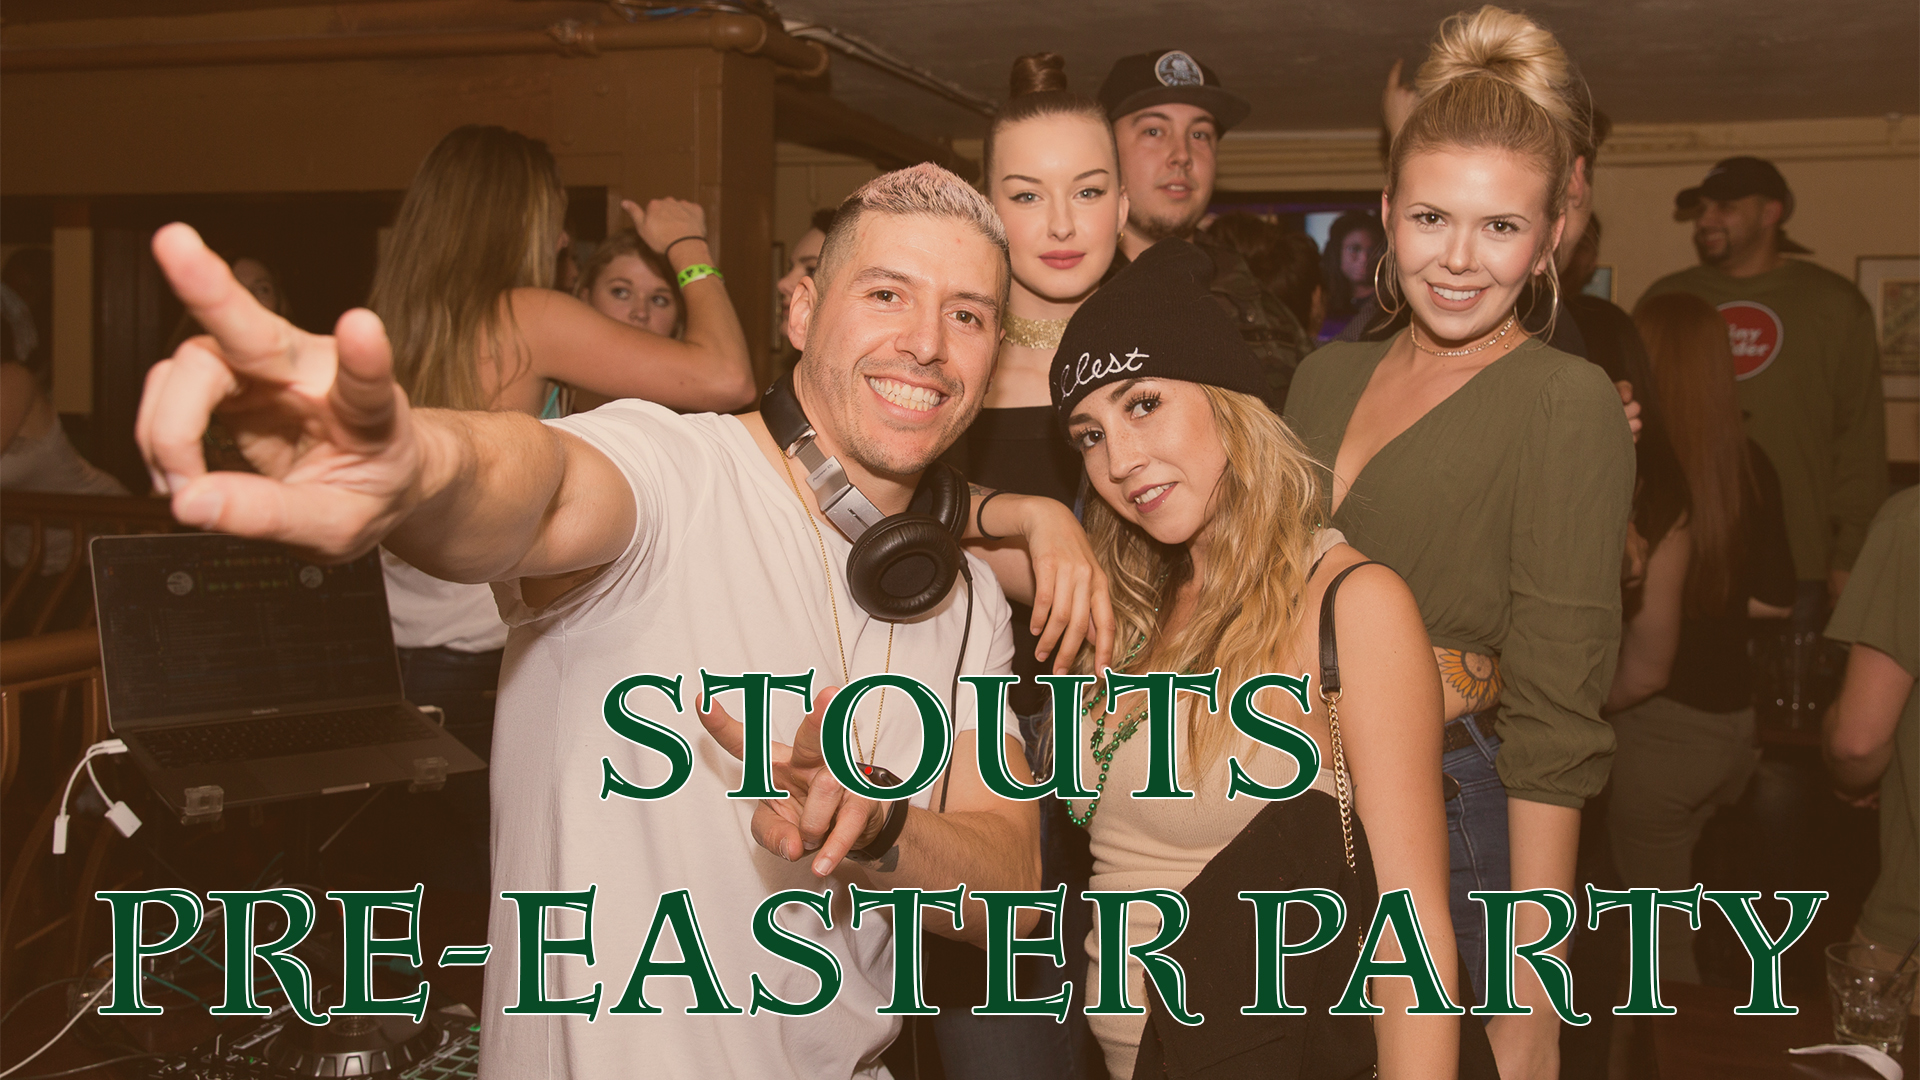 Stouts Easter Preparty event photo.jpg